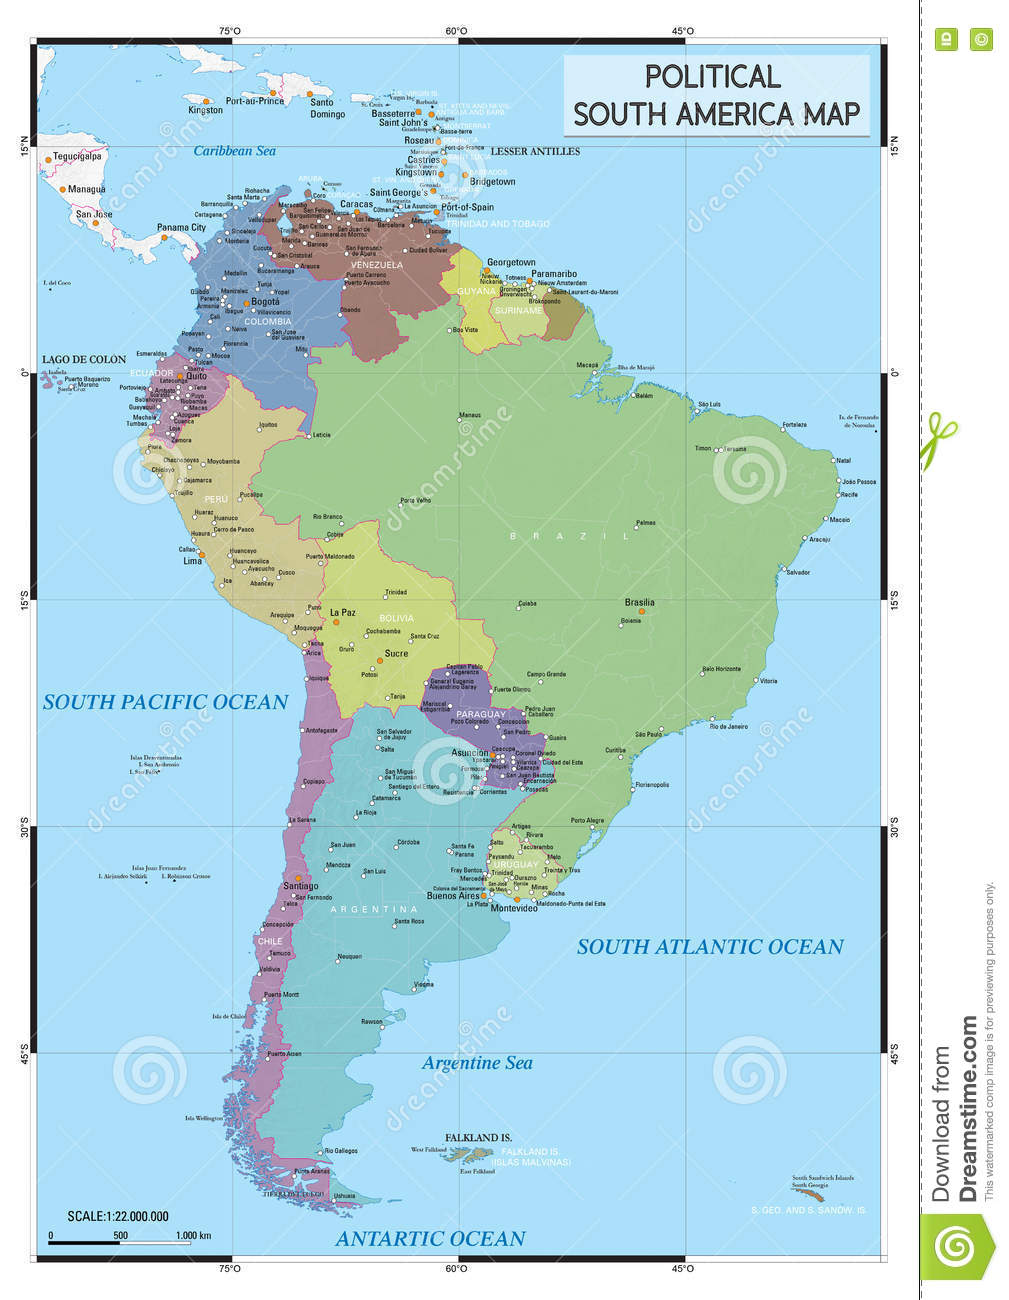 Political South America Map Stock Vector - Illustration of ...